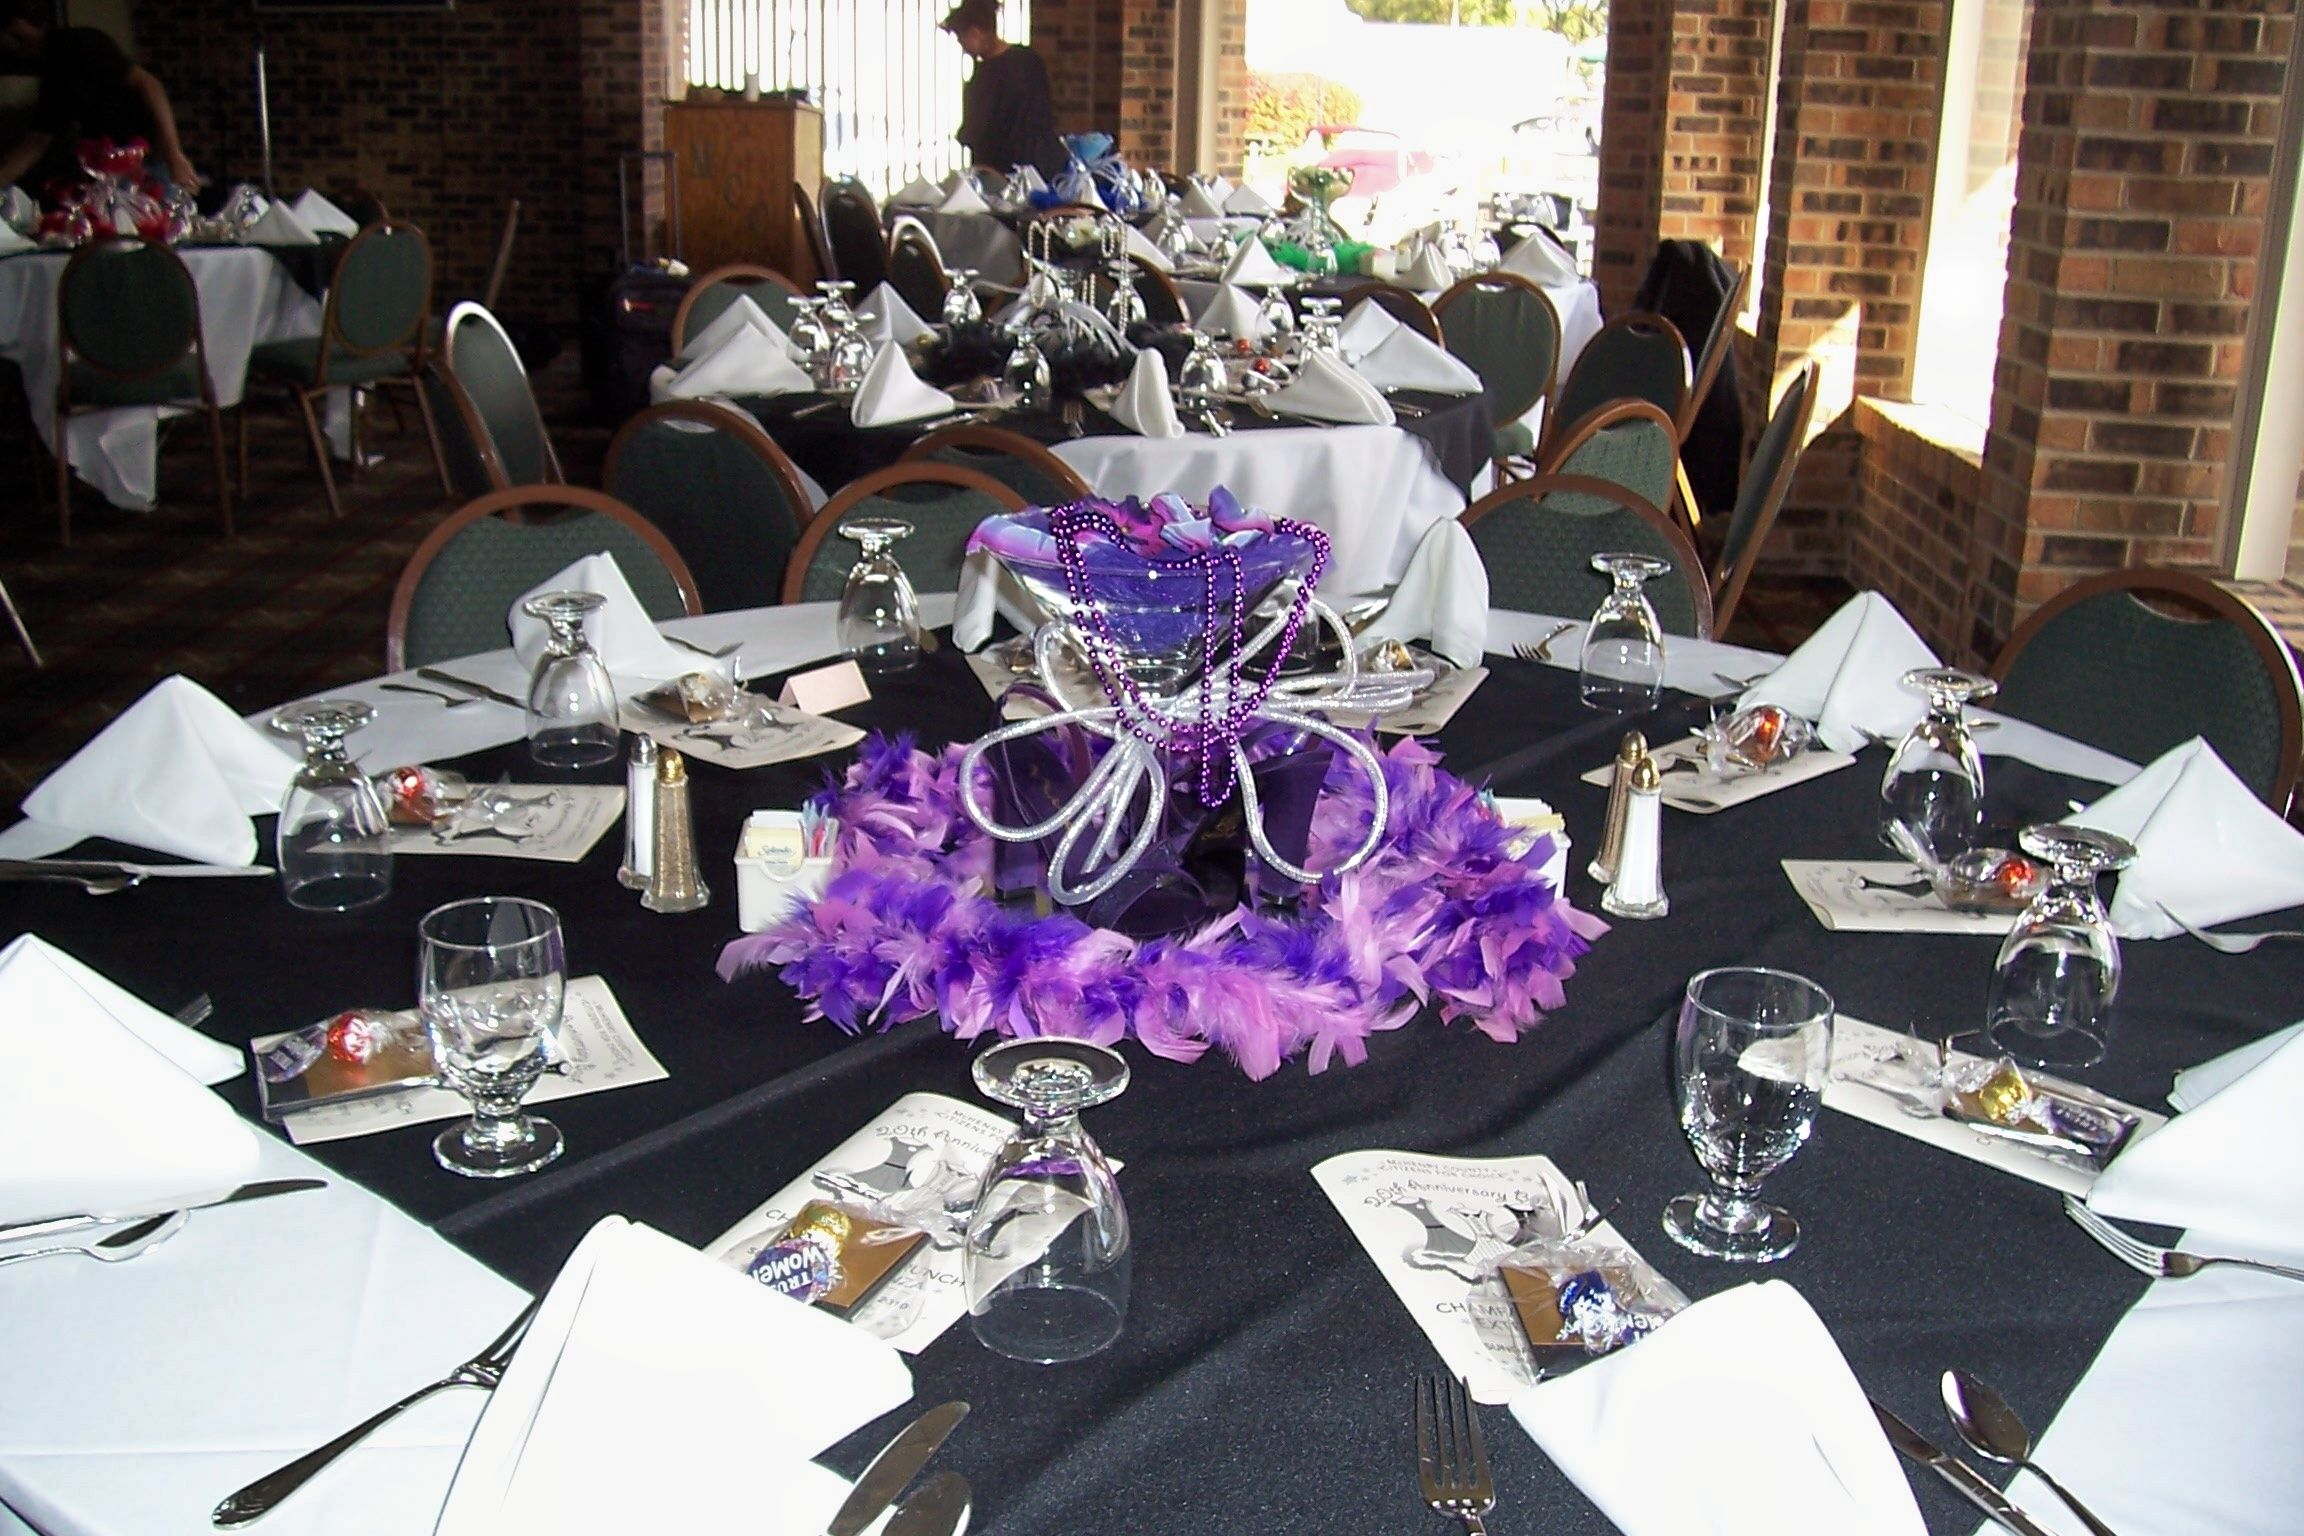 Ideas for pastor anniversary table - Ideas For Pastor Anniversary Table 2